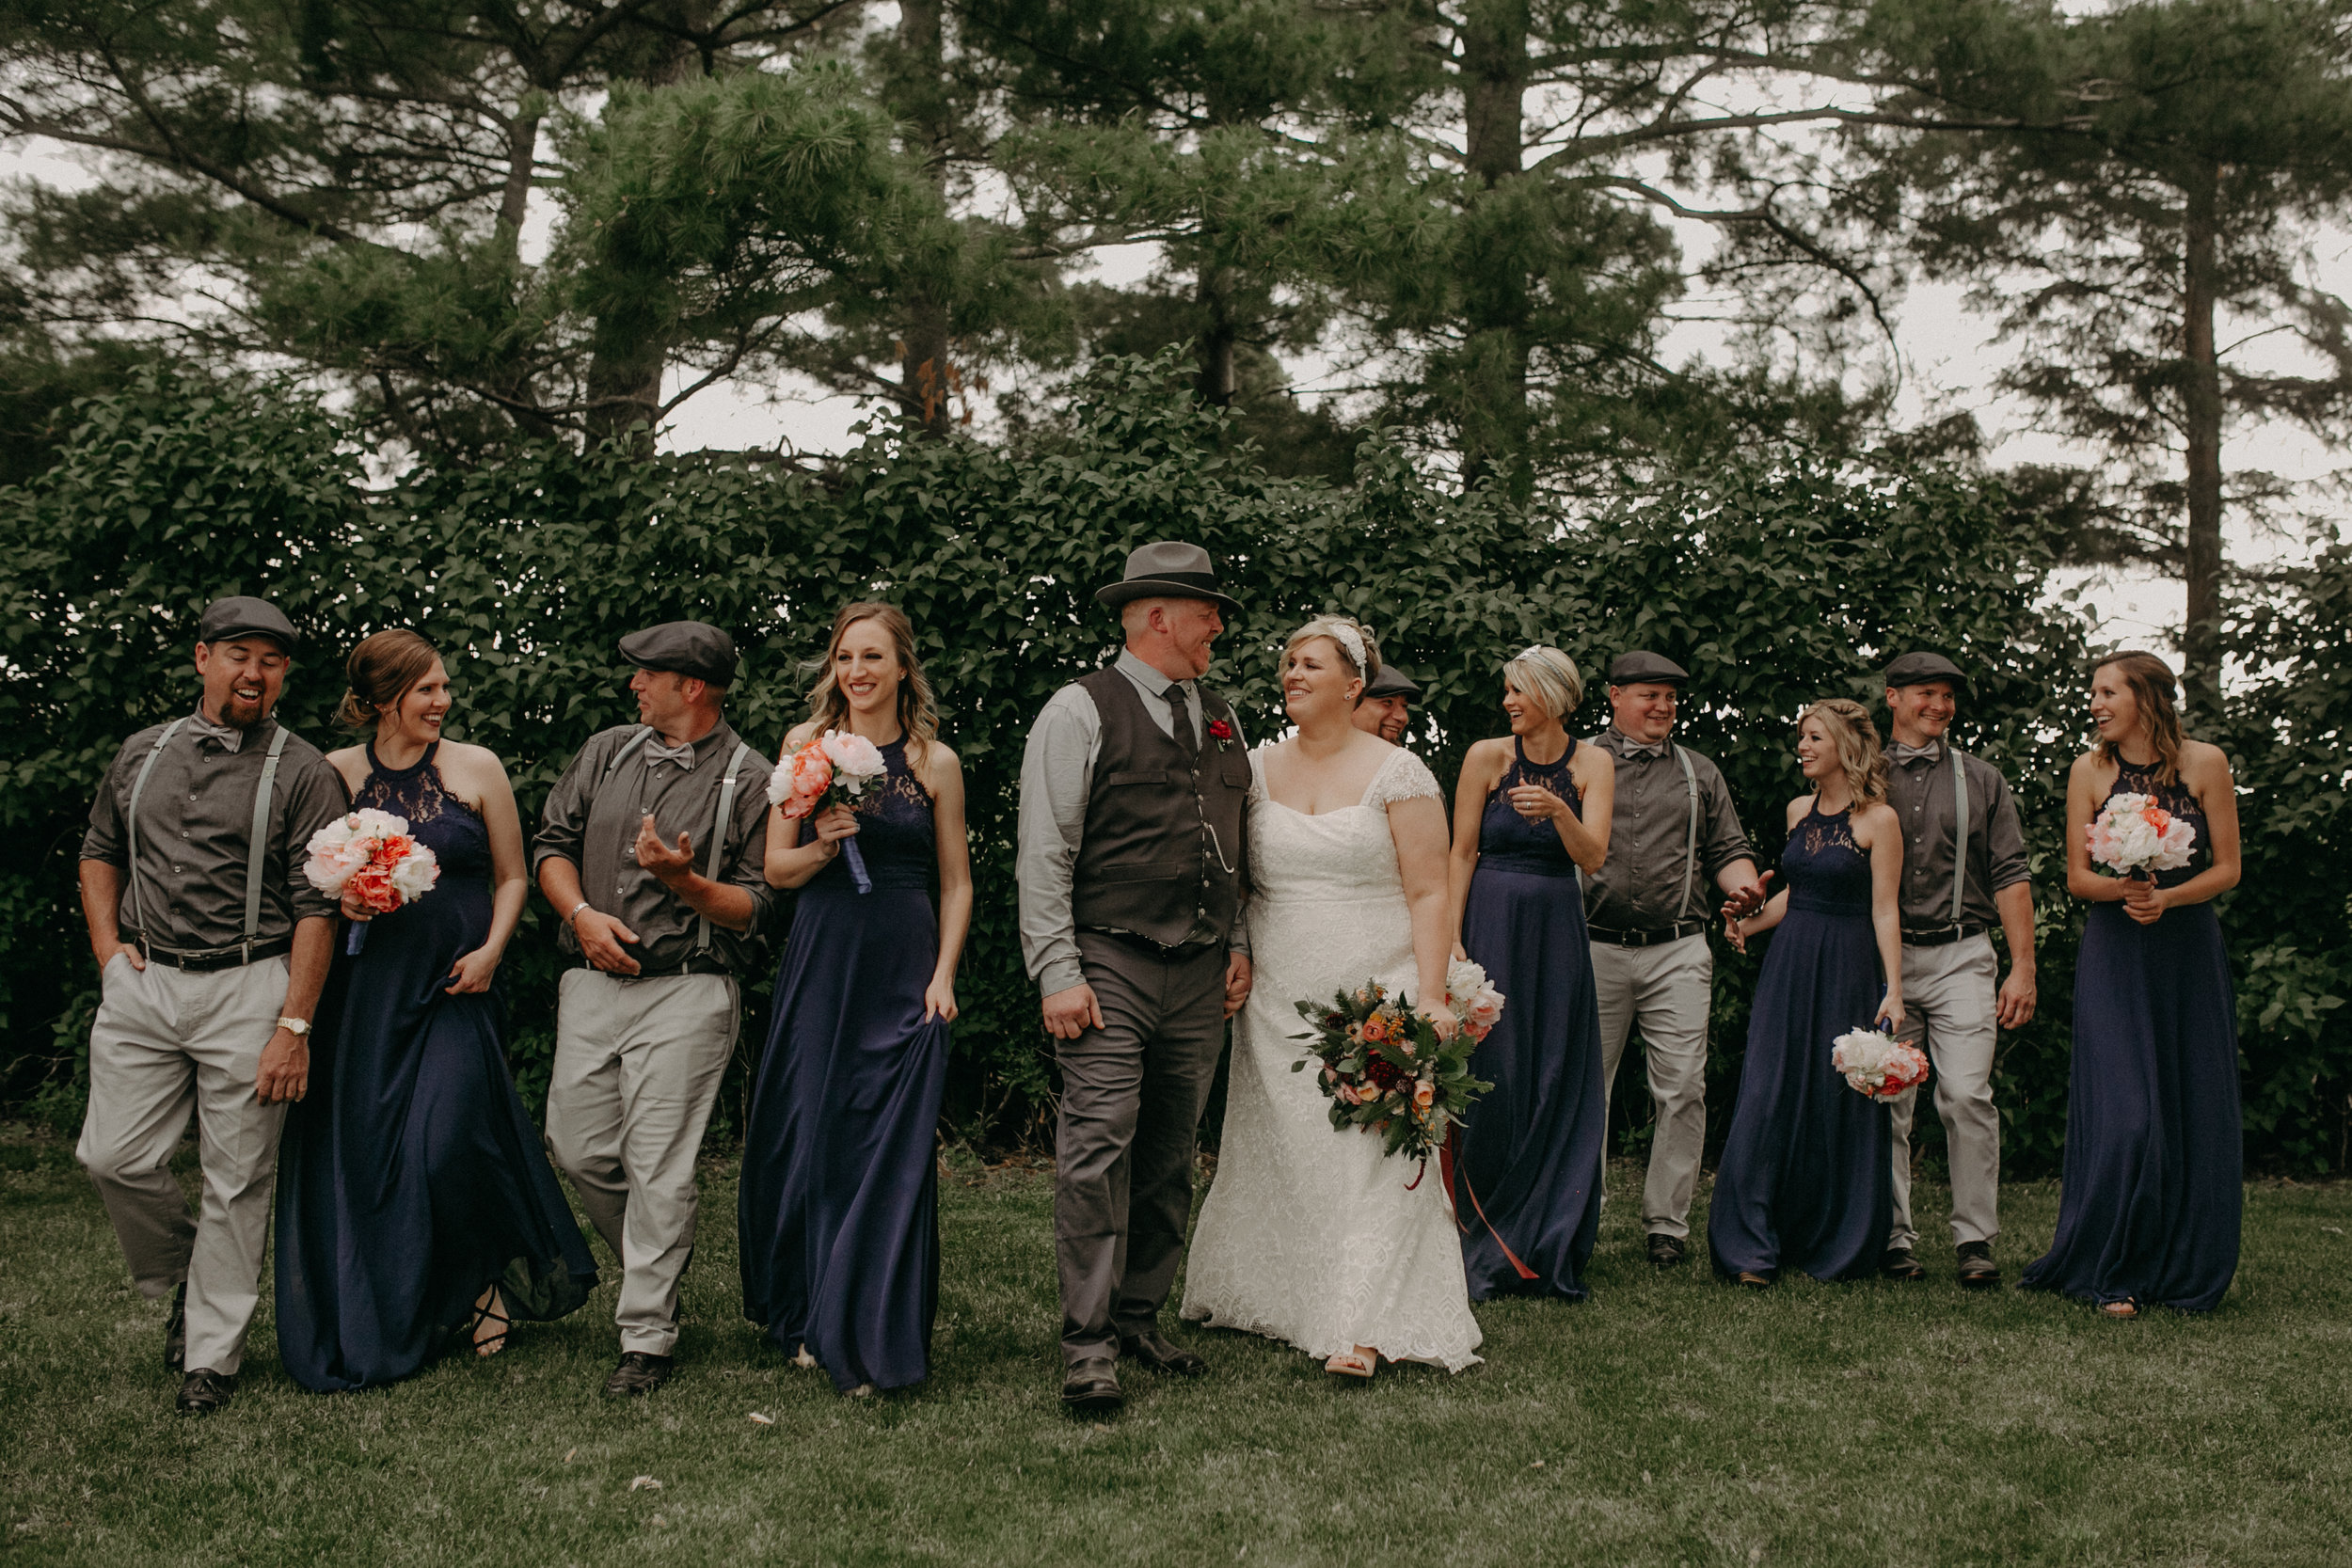 wedding party photos captured by Andrea Wagner Photography in Ellsworth WI